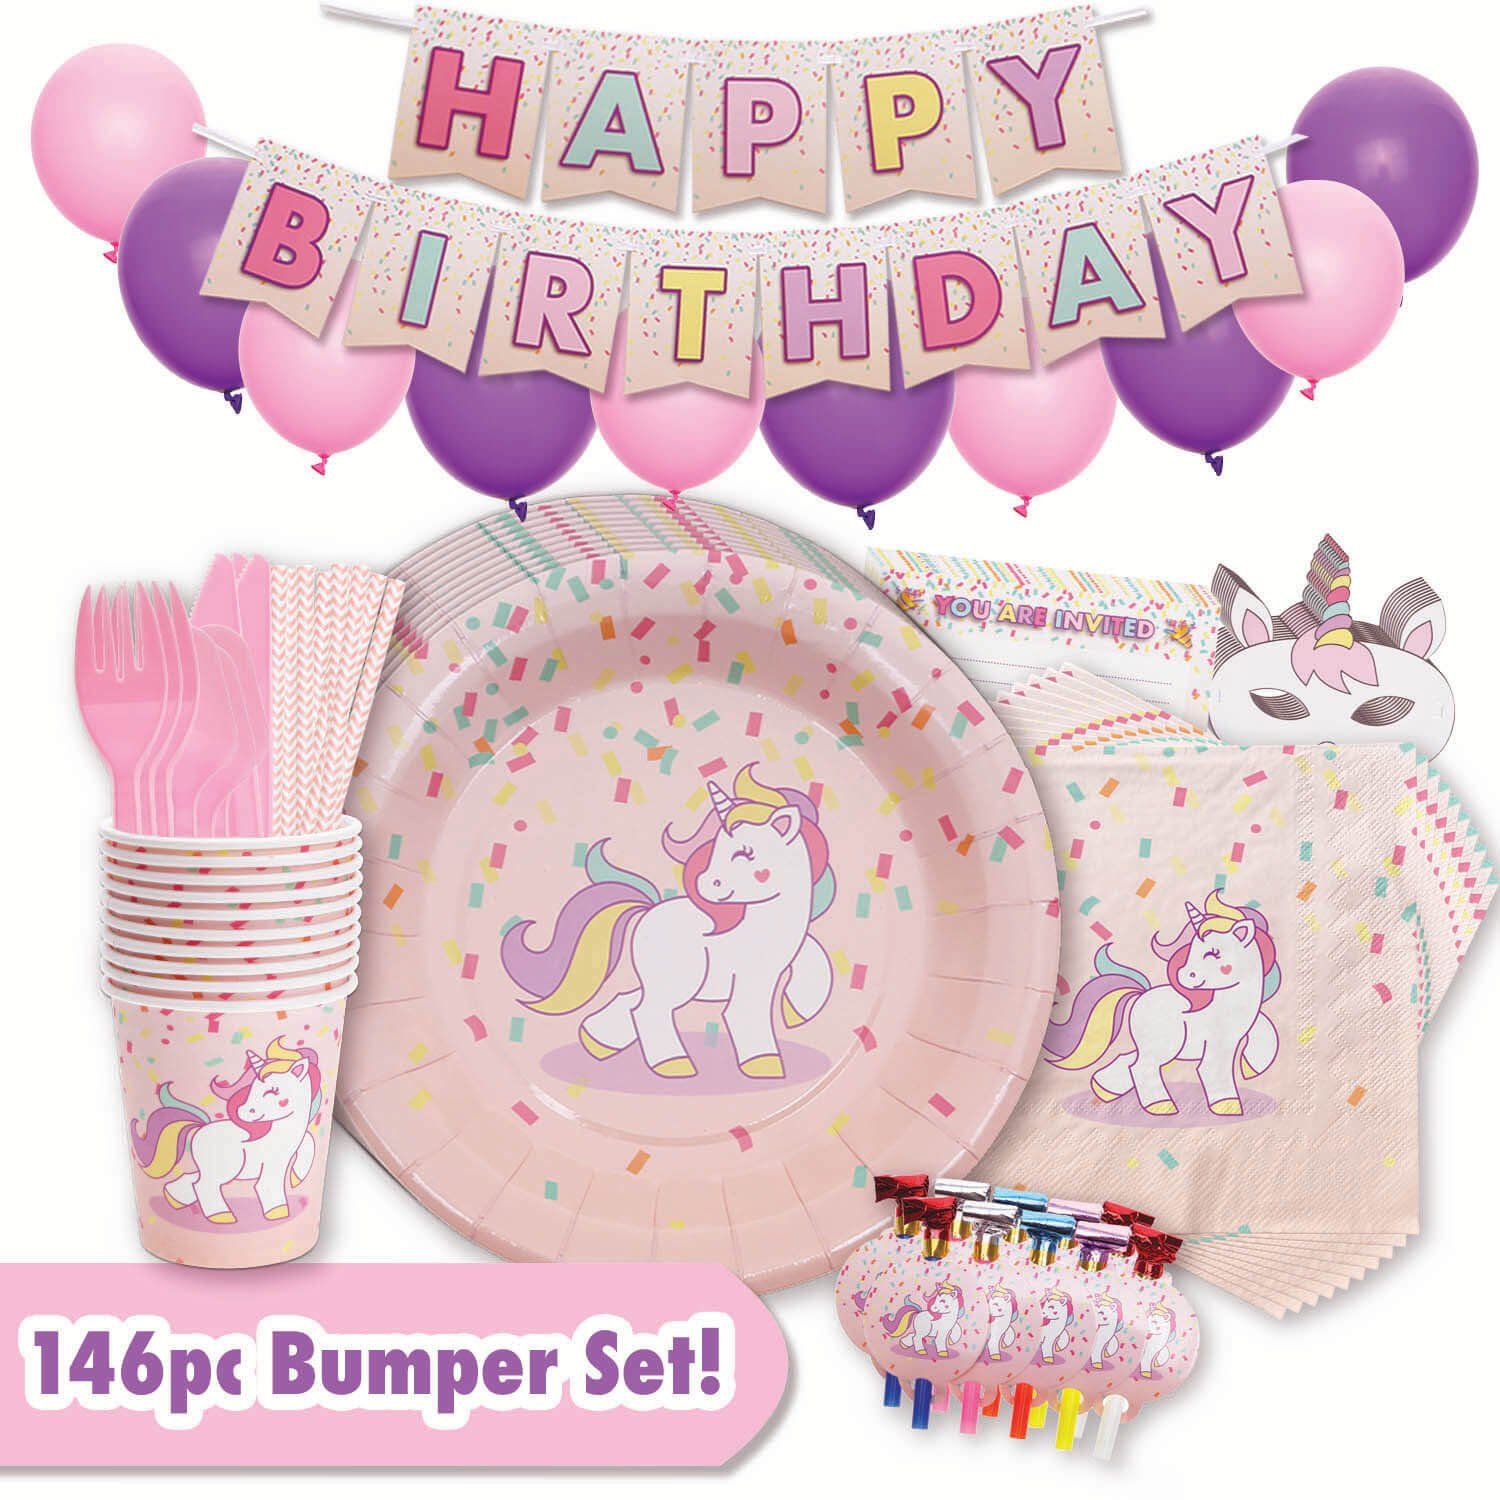 Unicorn Party Supplies Deluxe Set - 146pc Expanded Set - Everything Needed For A Magical Birthday - Unicorns on Plates, Cups, Cutlery, Cupcake Toppers, Napkins & Much More - Decorations Set Serves 10 by LIVEWELL Home